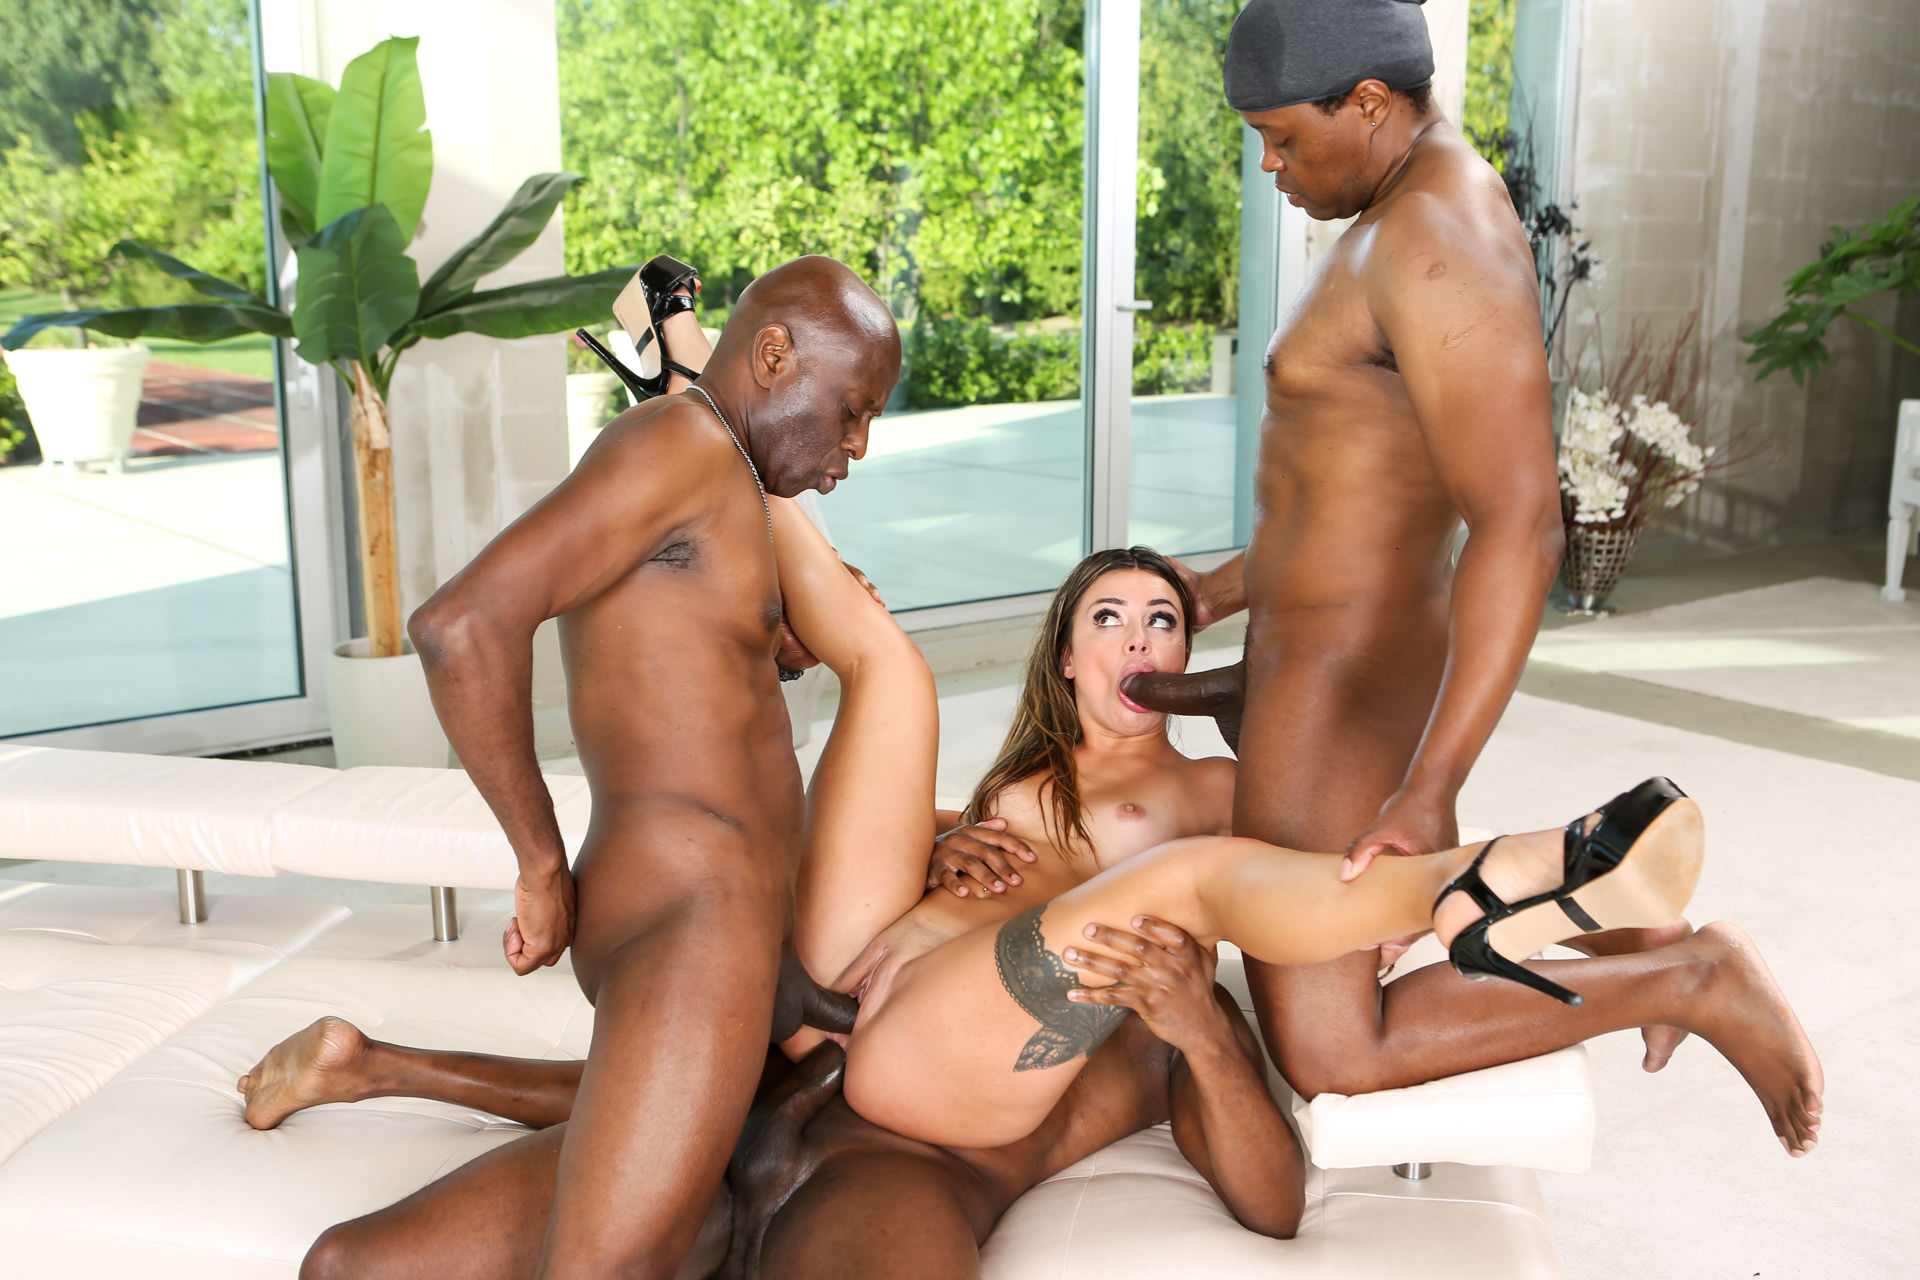 Download EvilAngel.com - My Name Is Zaawaadi, Scene 02